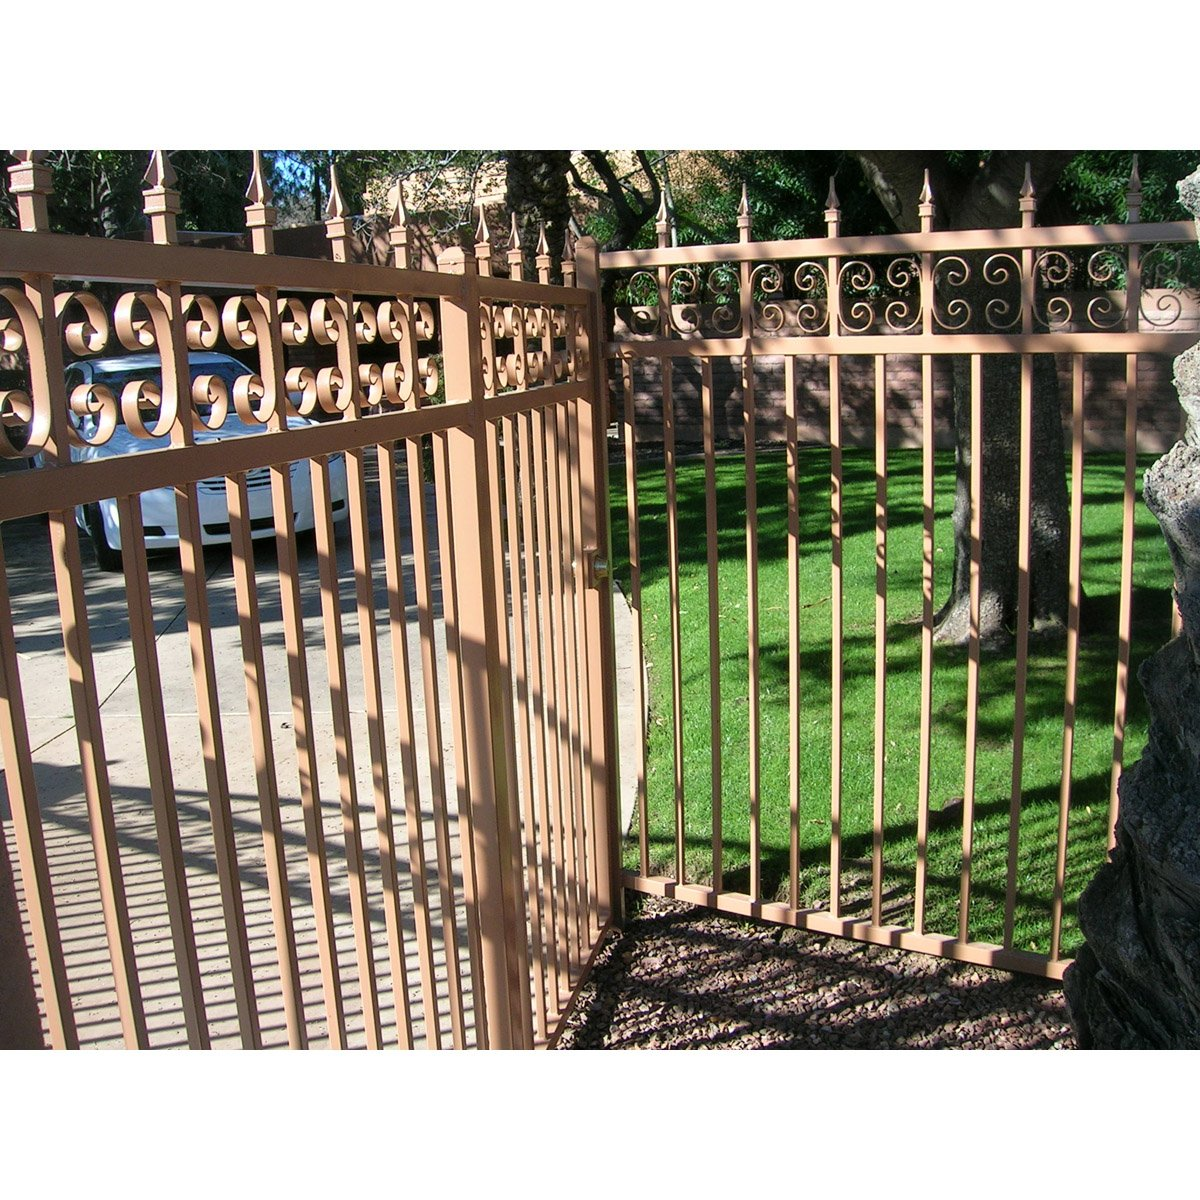 Custom Iron Fencing with Decoration